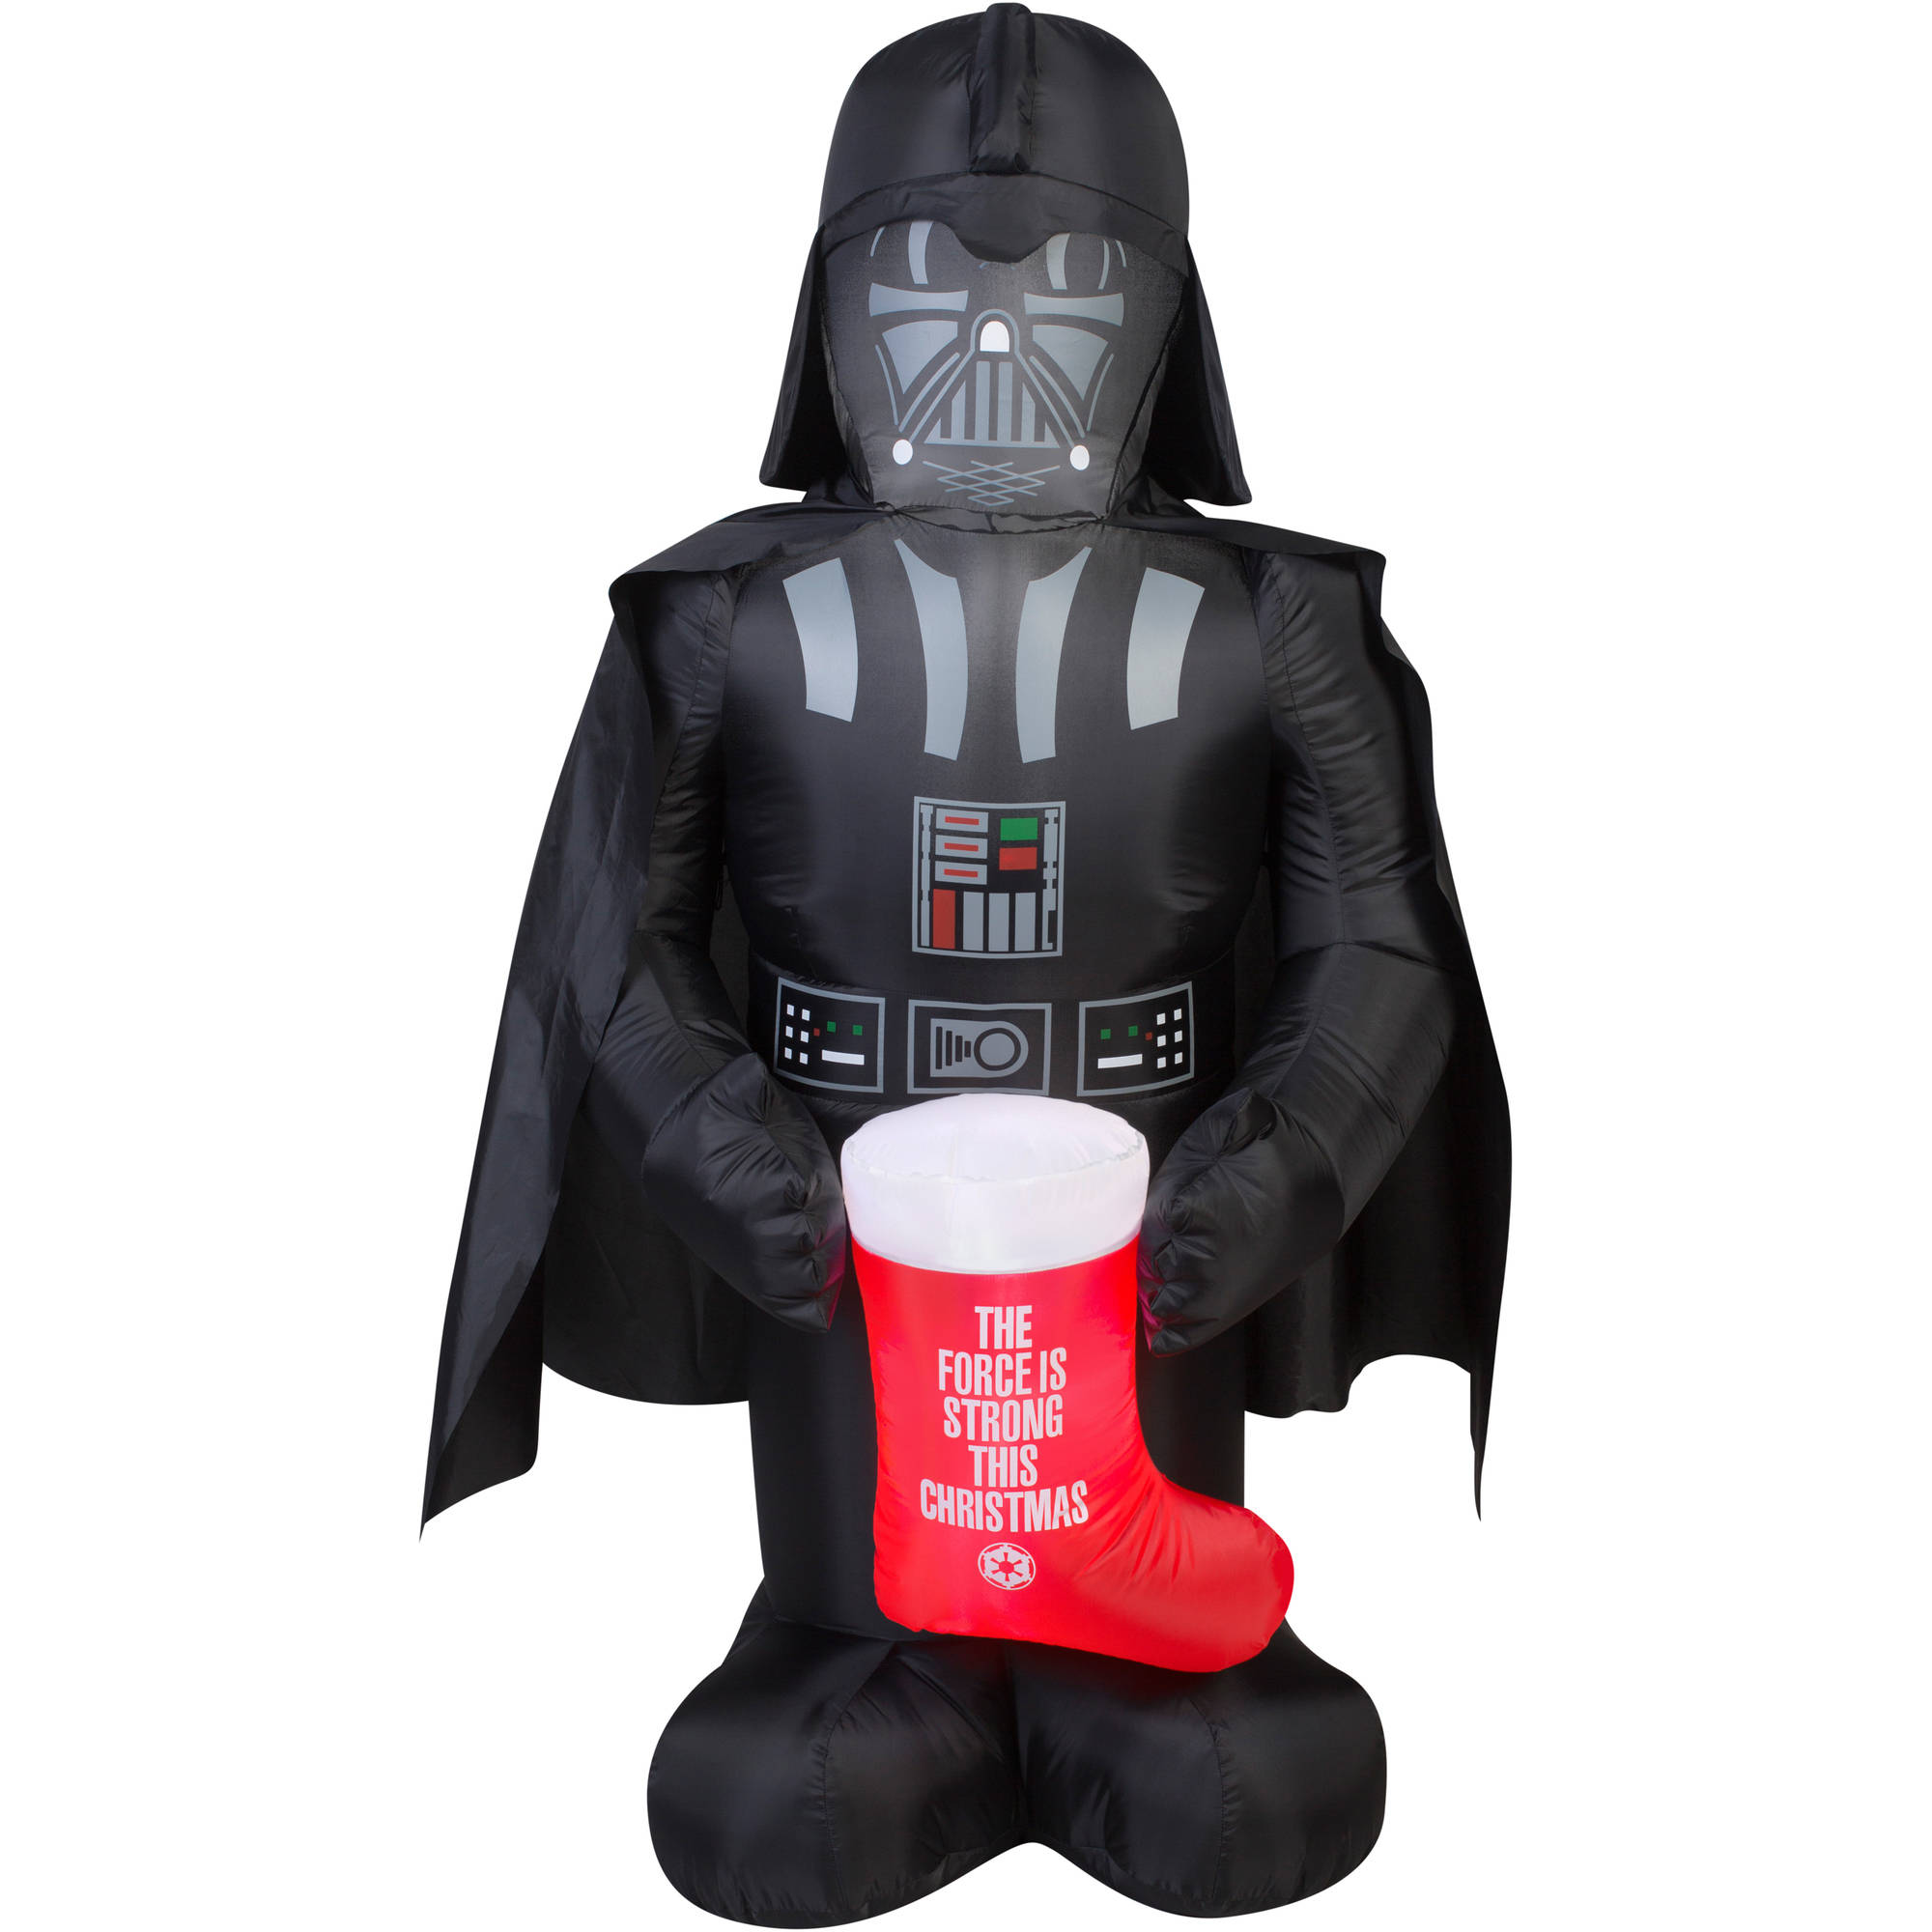 5 airblown inflatable darth vader with stocking star wars christmas inflatable walmartcom - Star Wars Inflatable Christmas Decorations